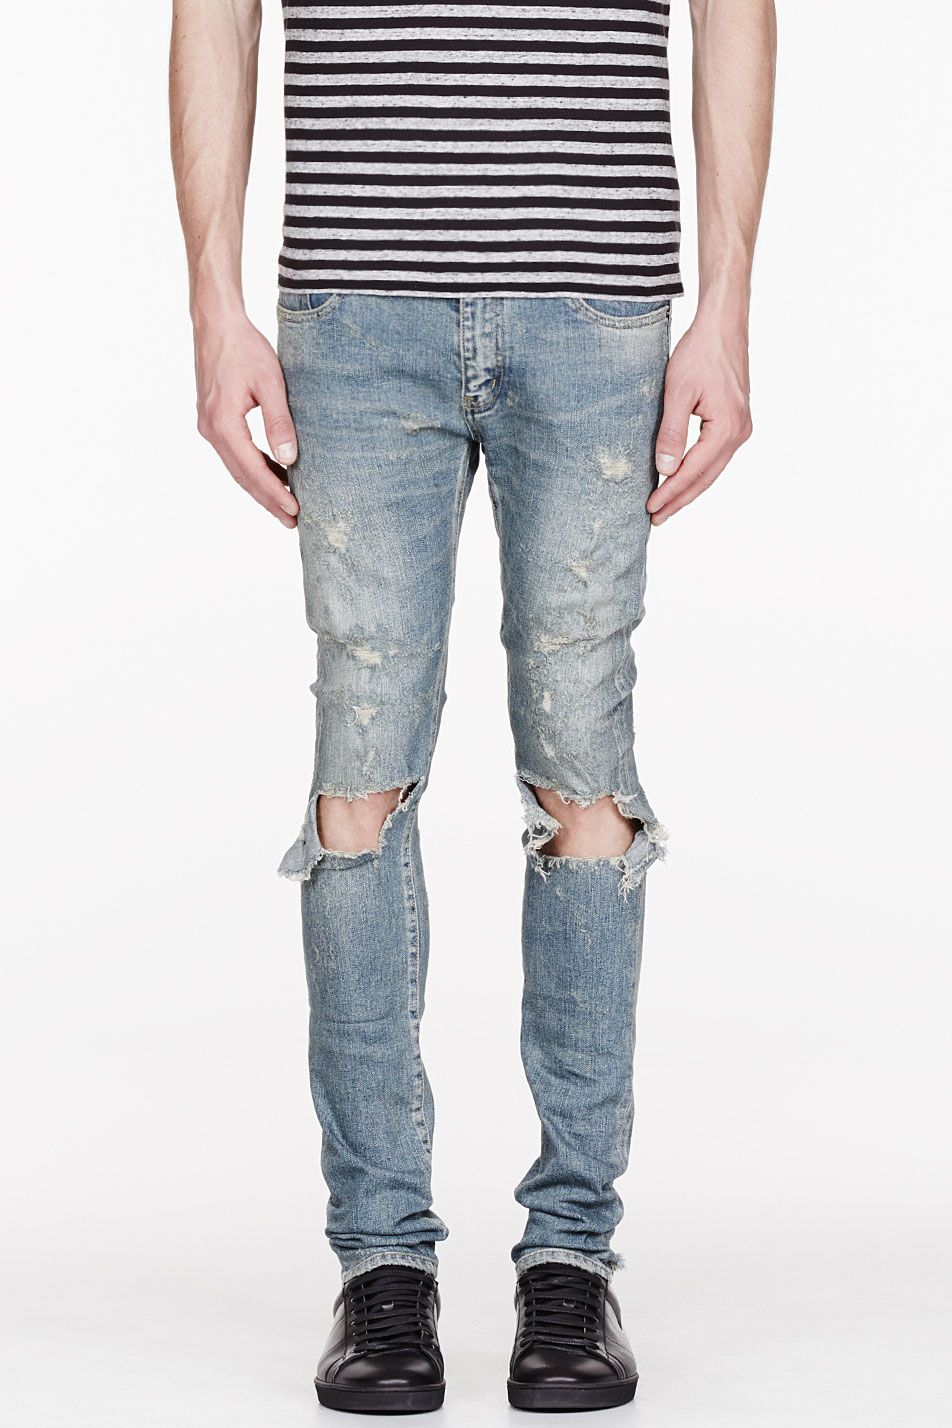 b5034c00a7e SAINT LAURENT Blude faded & destroyed jeans | NICE STYLES | Saint ...